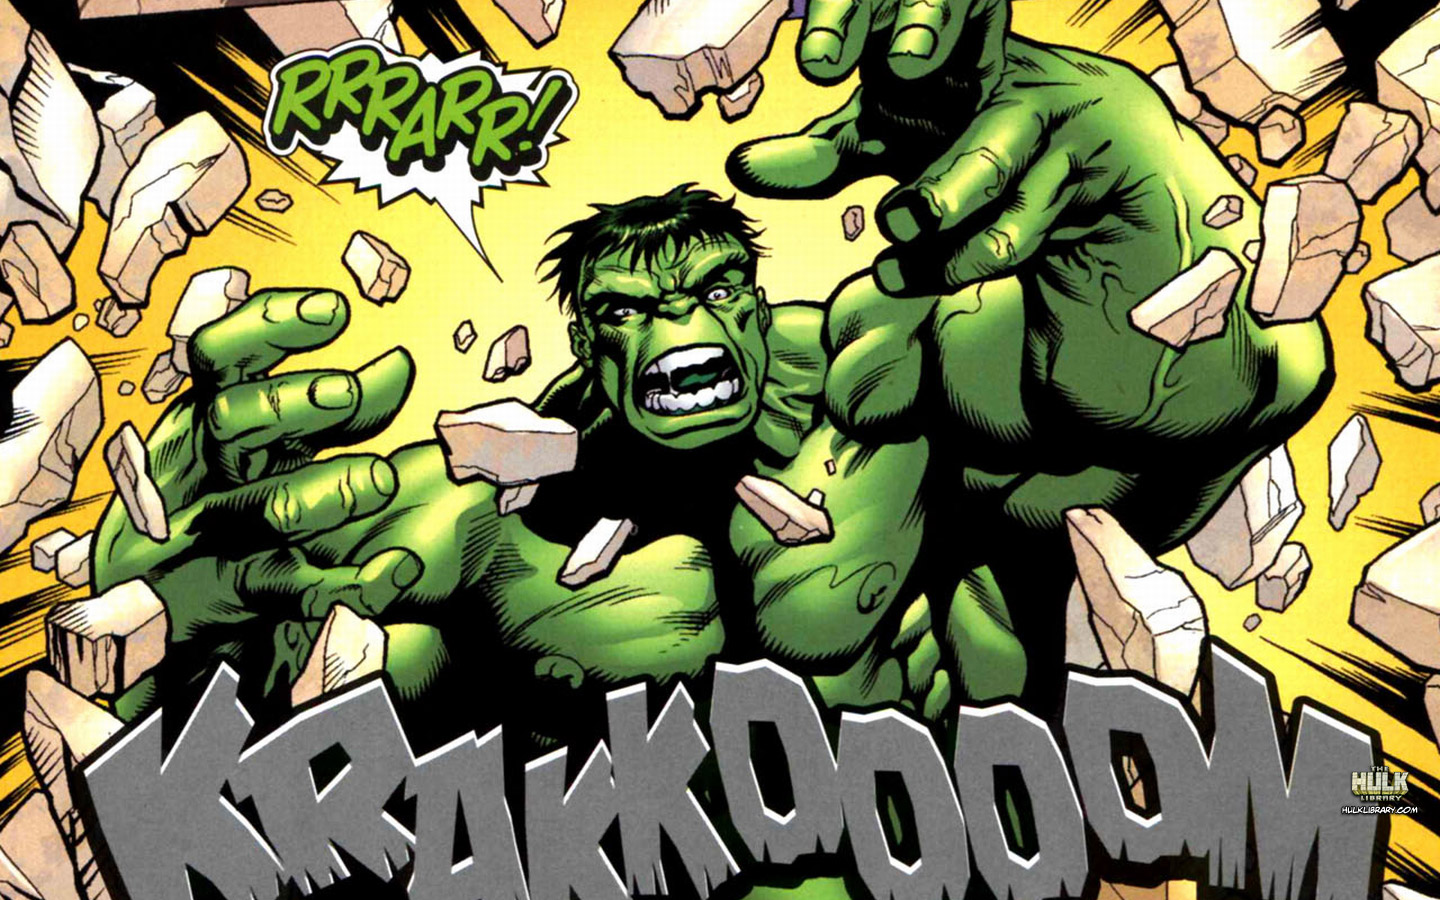 http://4.bp.blogspot.com/_NasEz7hlXhA/TR3ZfGB7c-I/AAAAAAAAAXw/UWRiTFCMsic/s1600/incredible-hulk-wallpaper-l.jpg